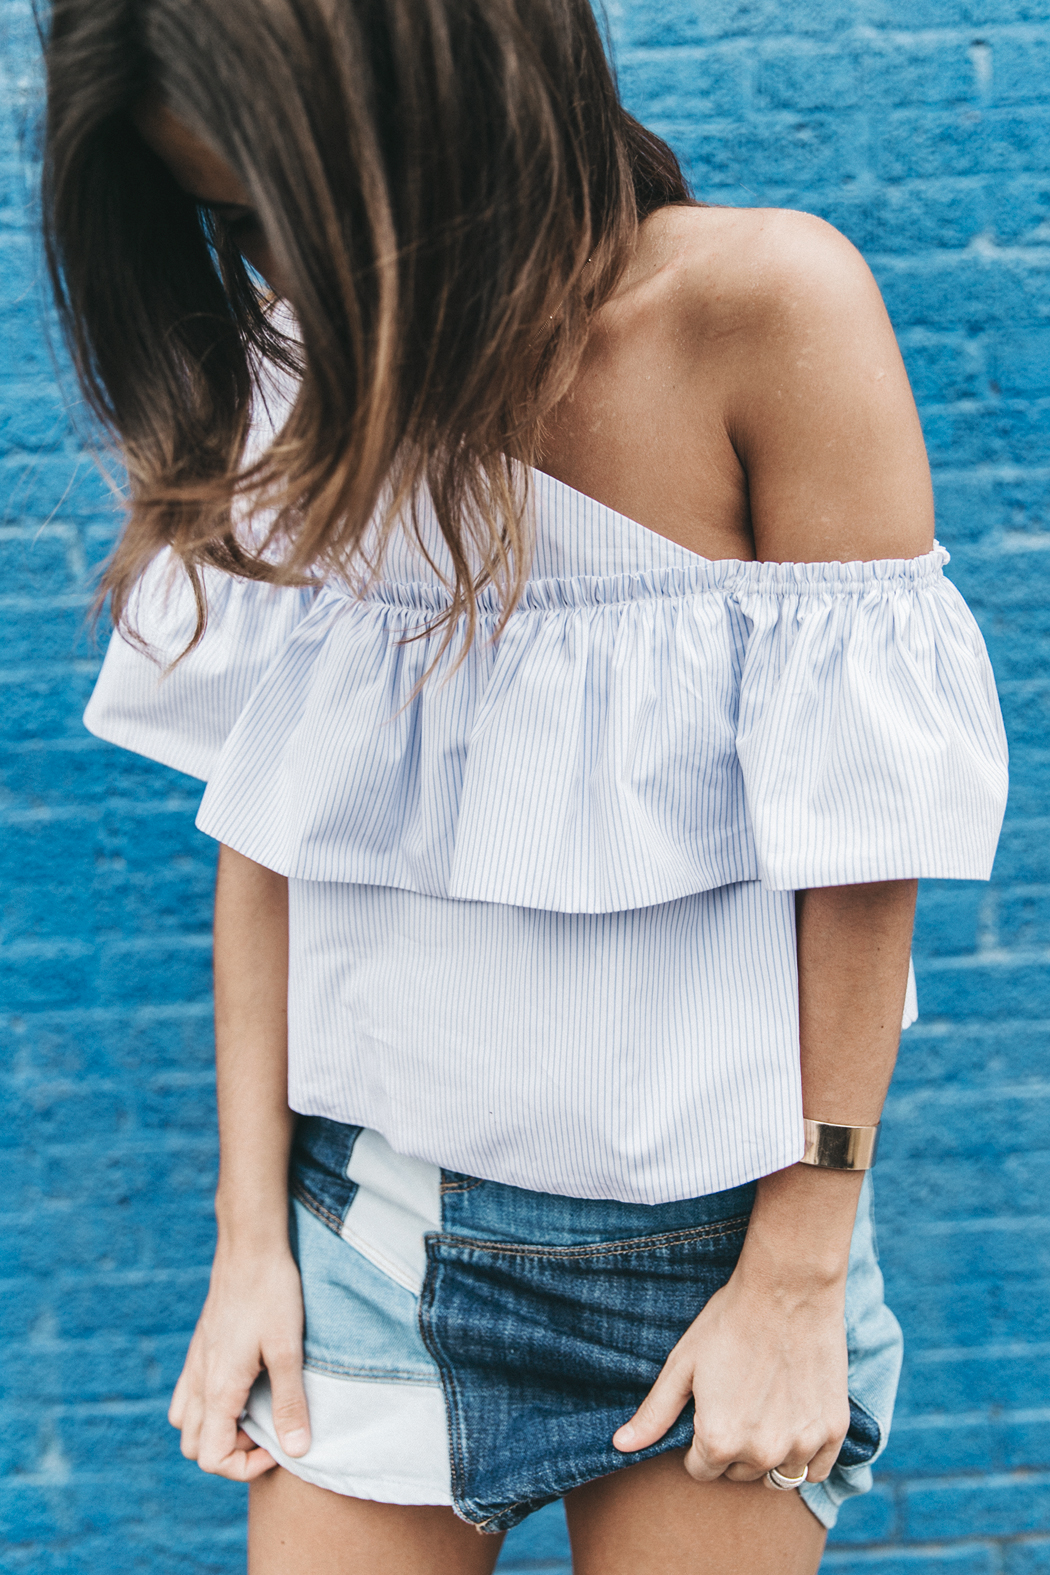 Patchwork_Denim_Skirt-Off_Shoulders-Assymetric_Top-Stripes-Marni_Sandals-Outfit-Dallas-37